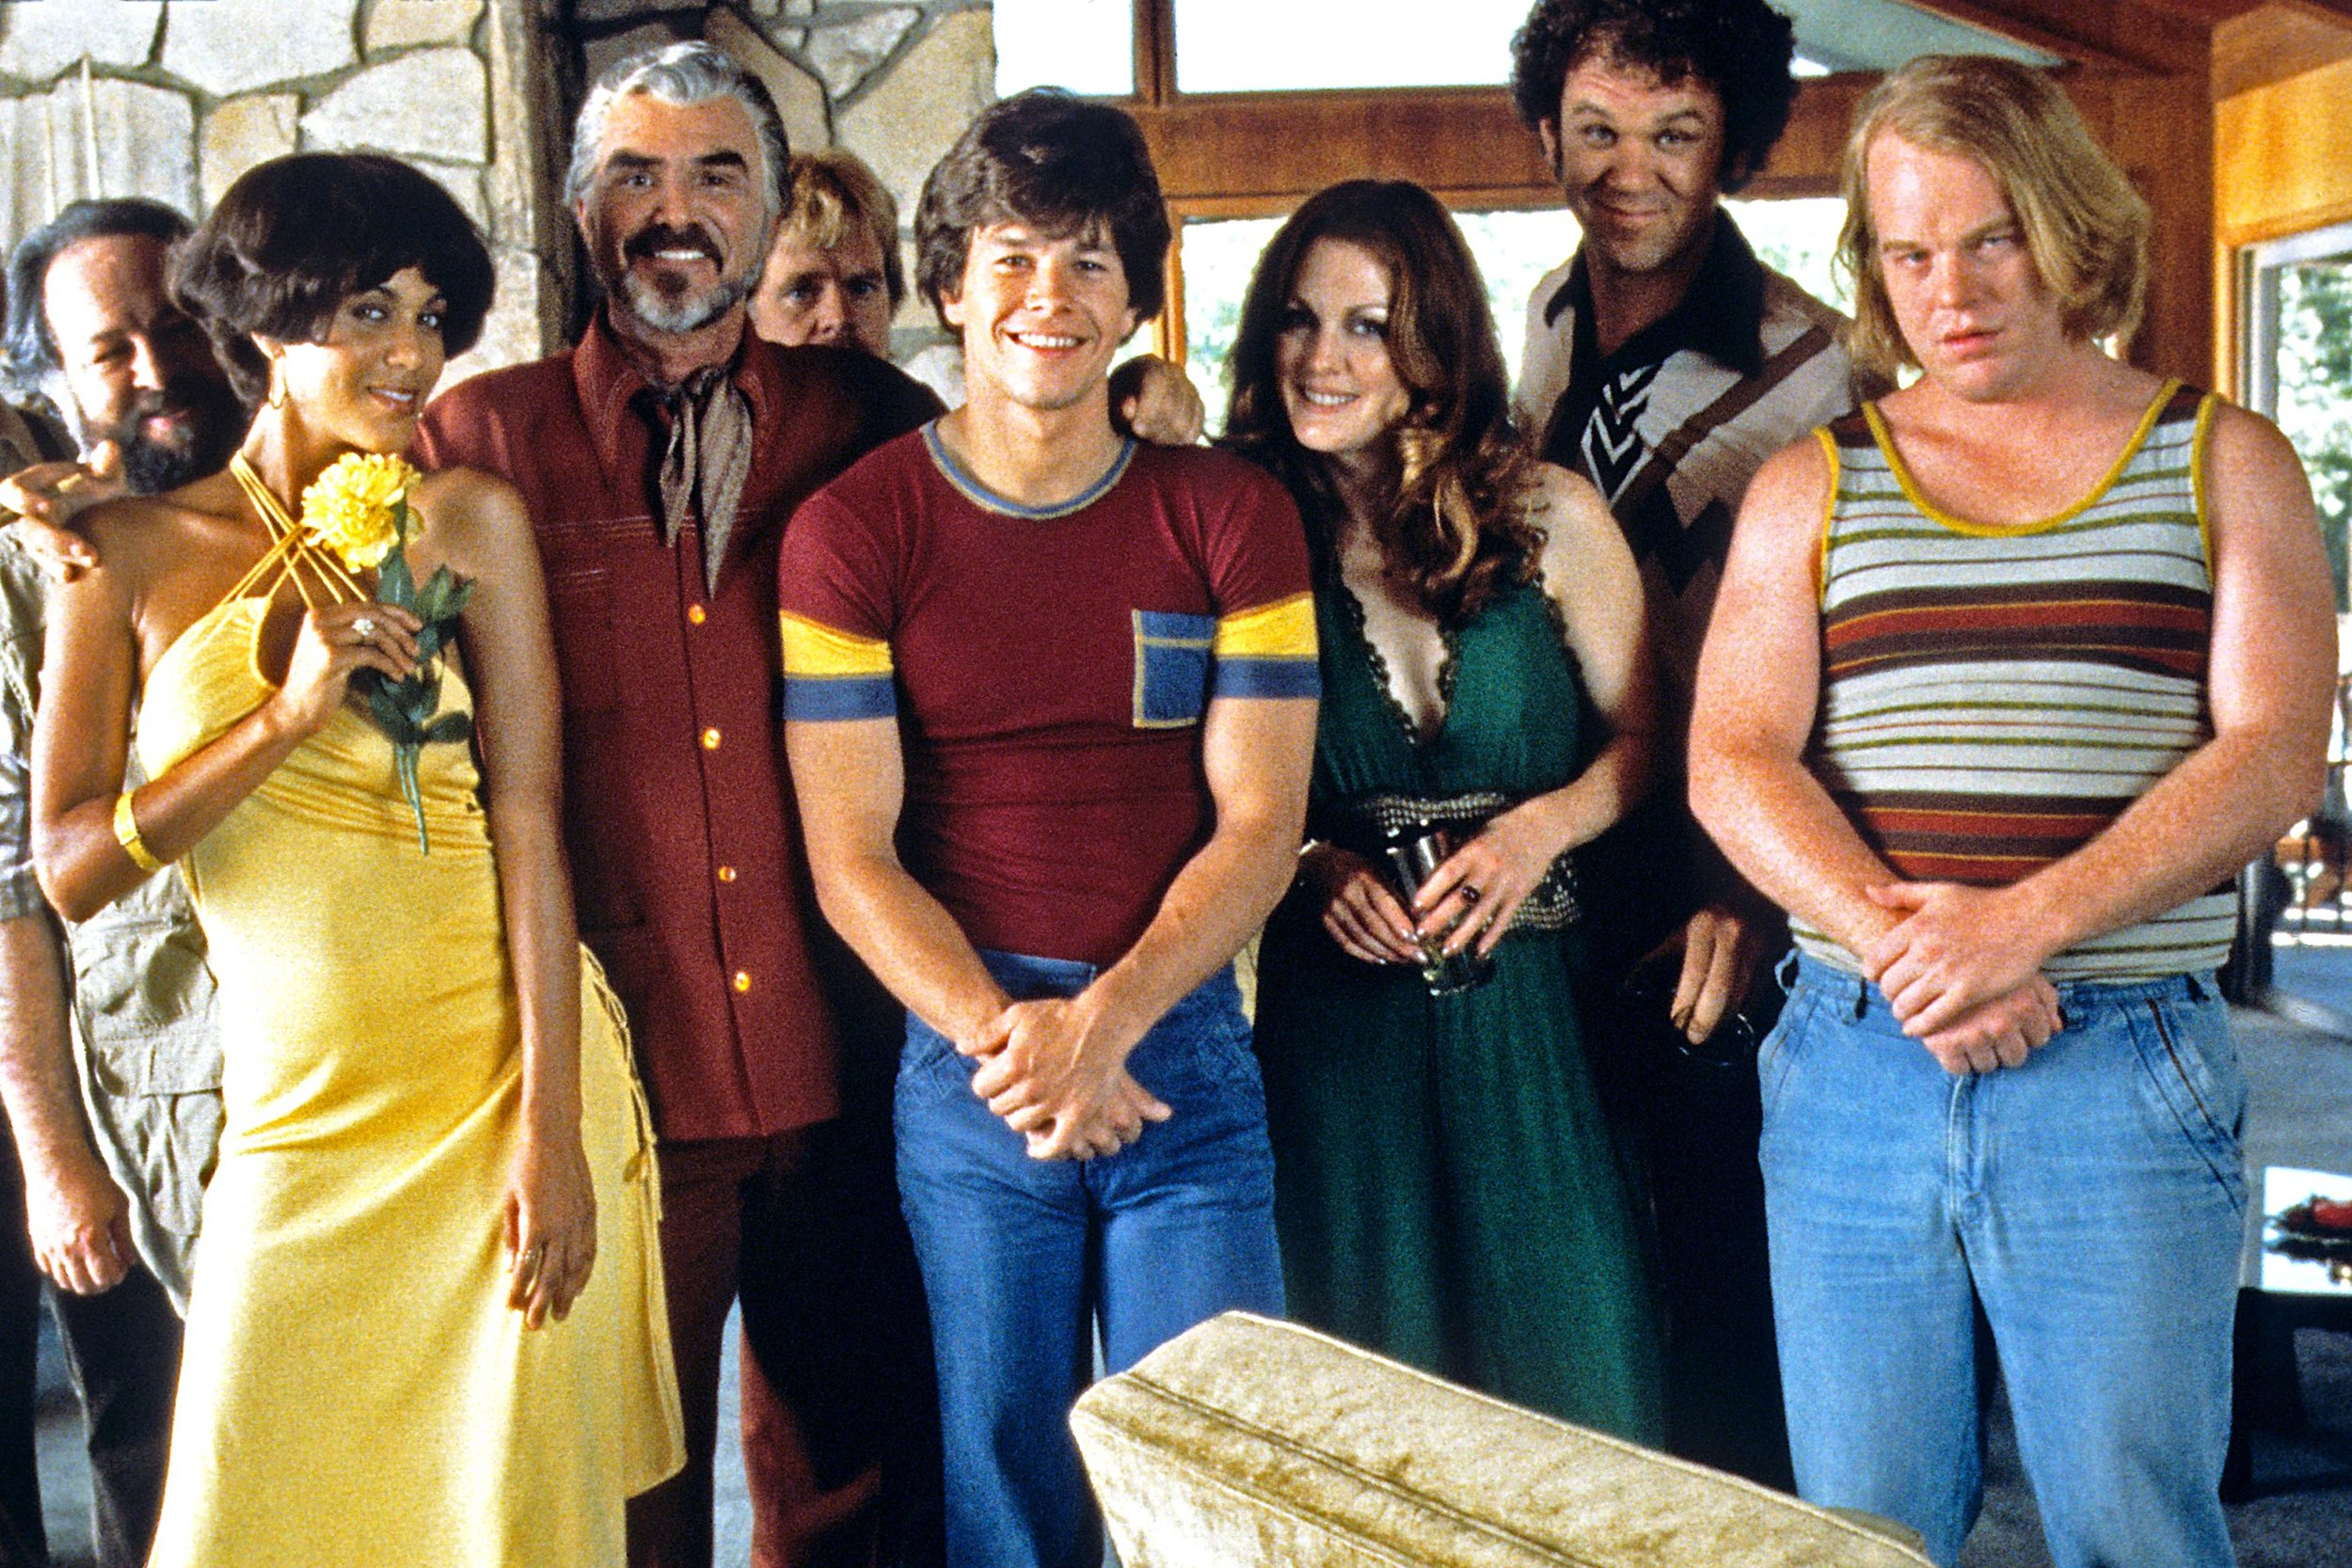 BOOGIE NIGHTS (1997 / 35mm Print) - Sun Jan 20th 5:30pm / Prince Charles Cinema, London UKMark Wahlberg goes from busboy to porn superstar in P.T Anderson's unforgettable trek through the highs of the disco era to the earth shattering come down of the 80s. Rounded out by a stellar supporting cast including Burt Reynolds, Heather Graham, Phillip Seymour Hoffman and Julianne Moore.More info HERE